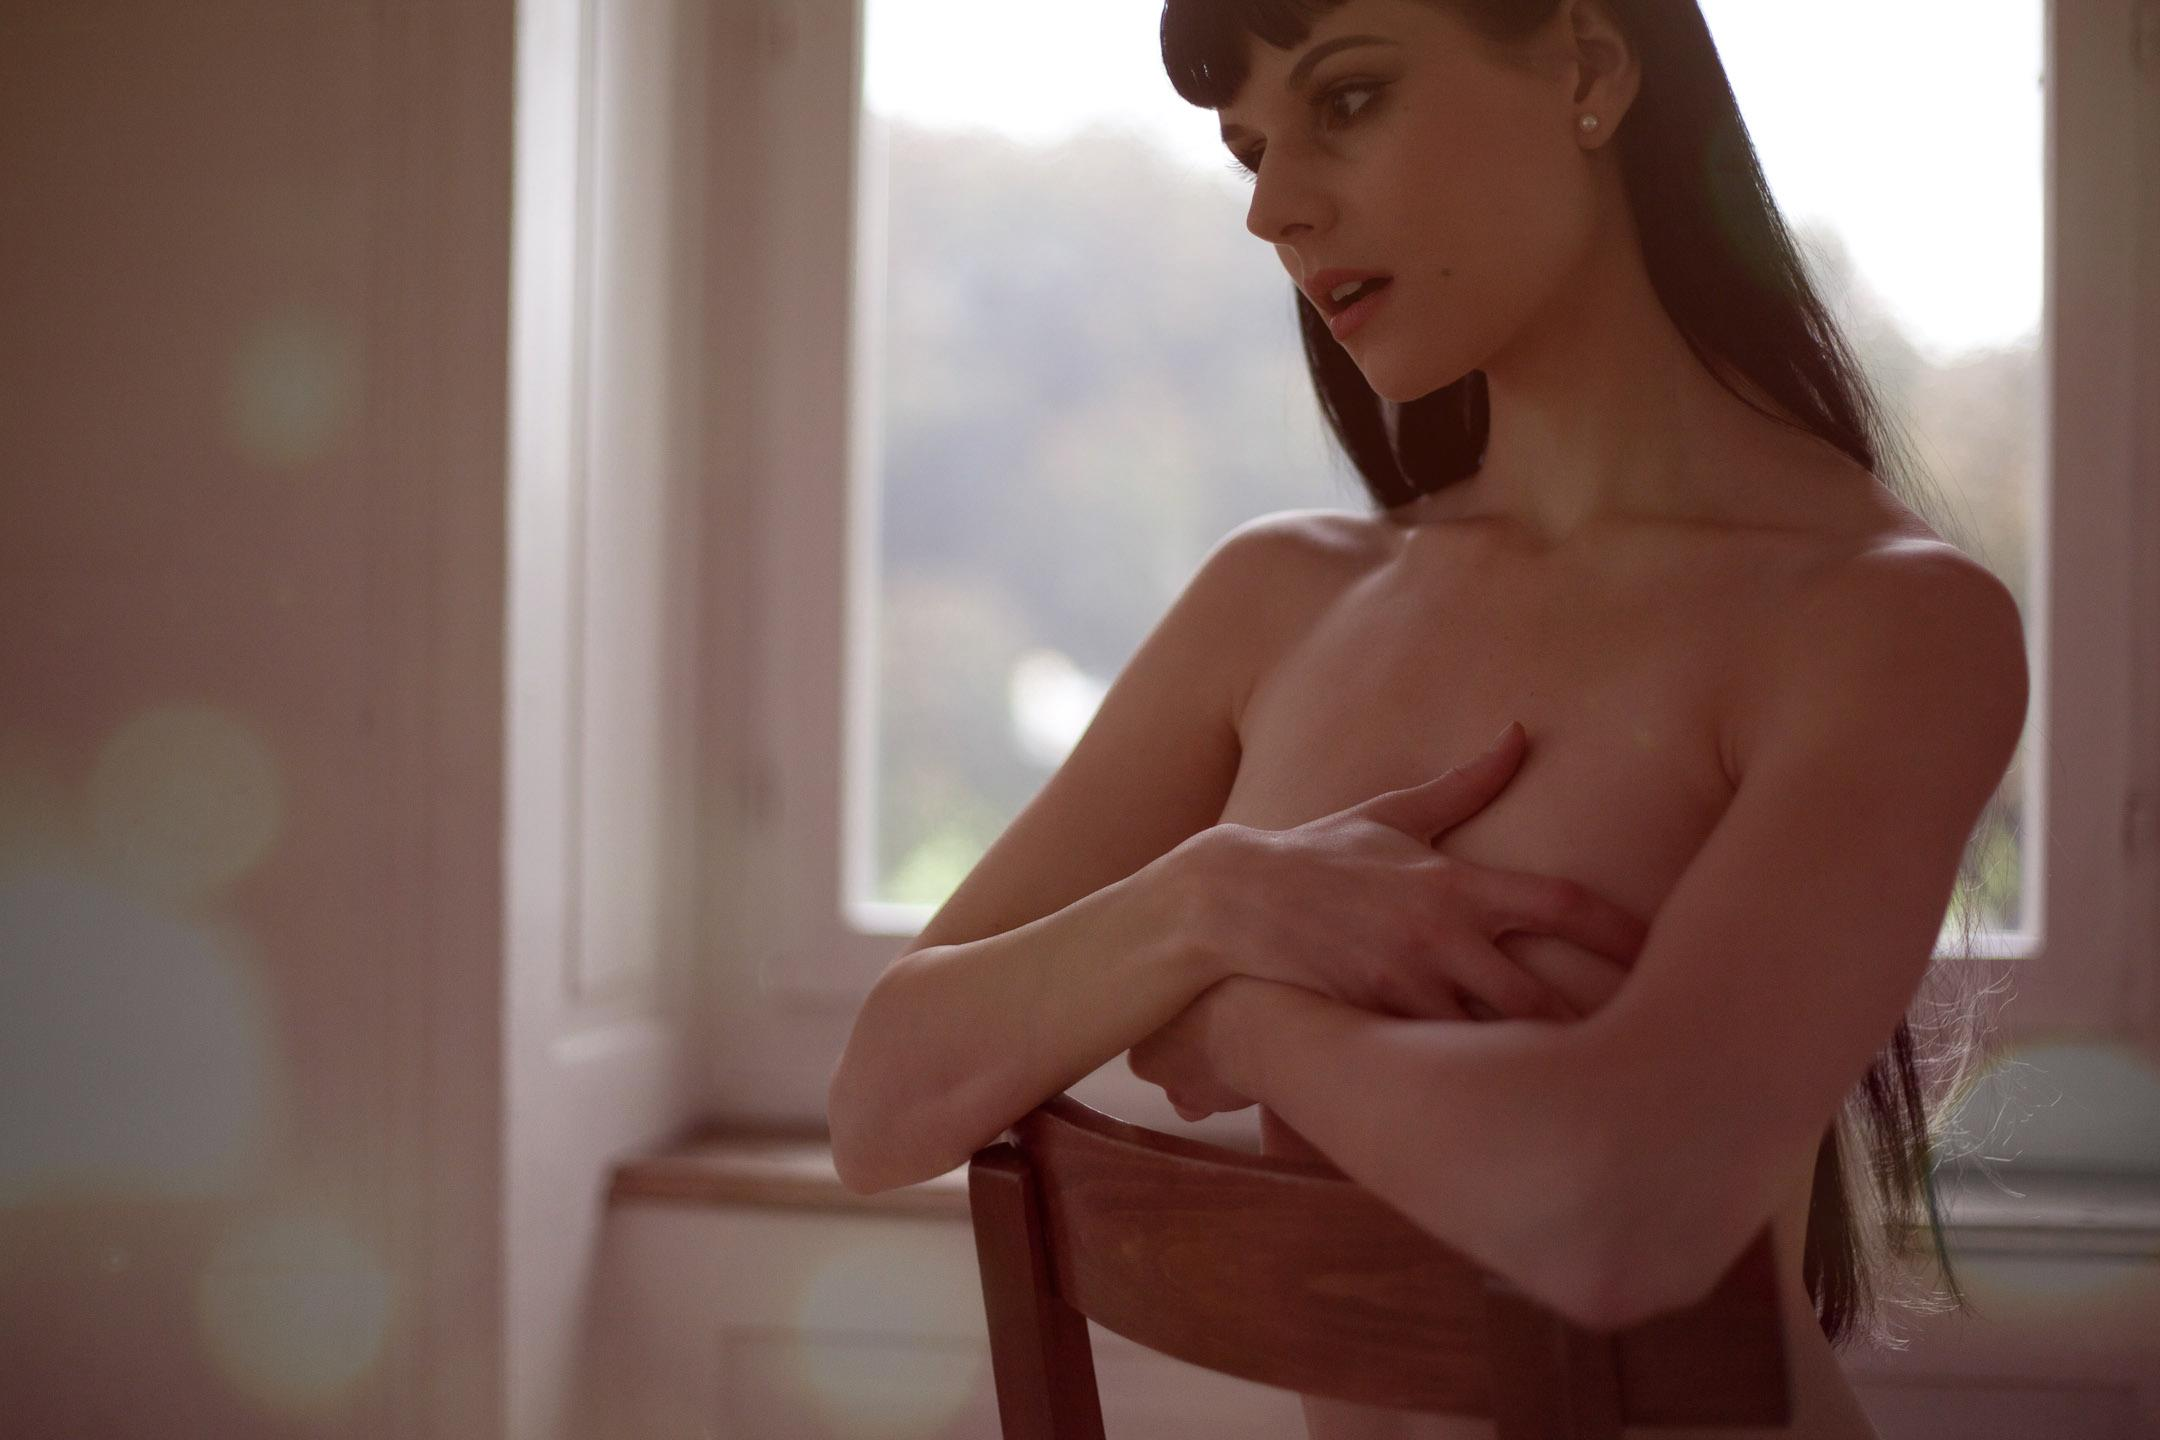 All sizes | Chair Girl | Flickr - Photo Sharing!